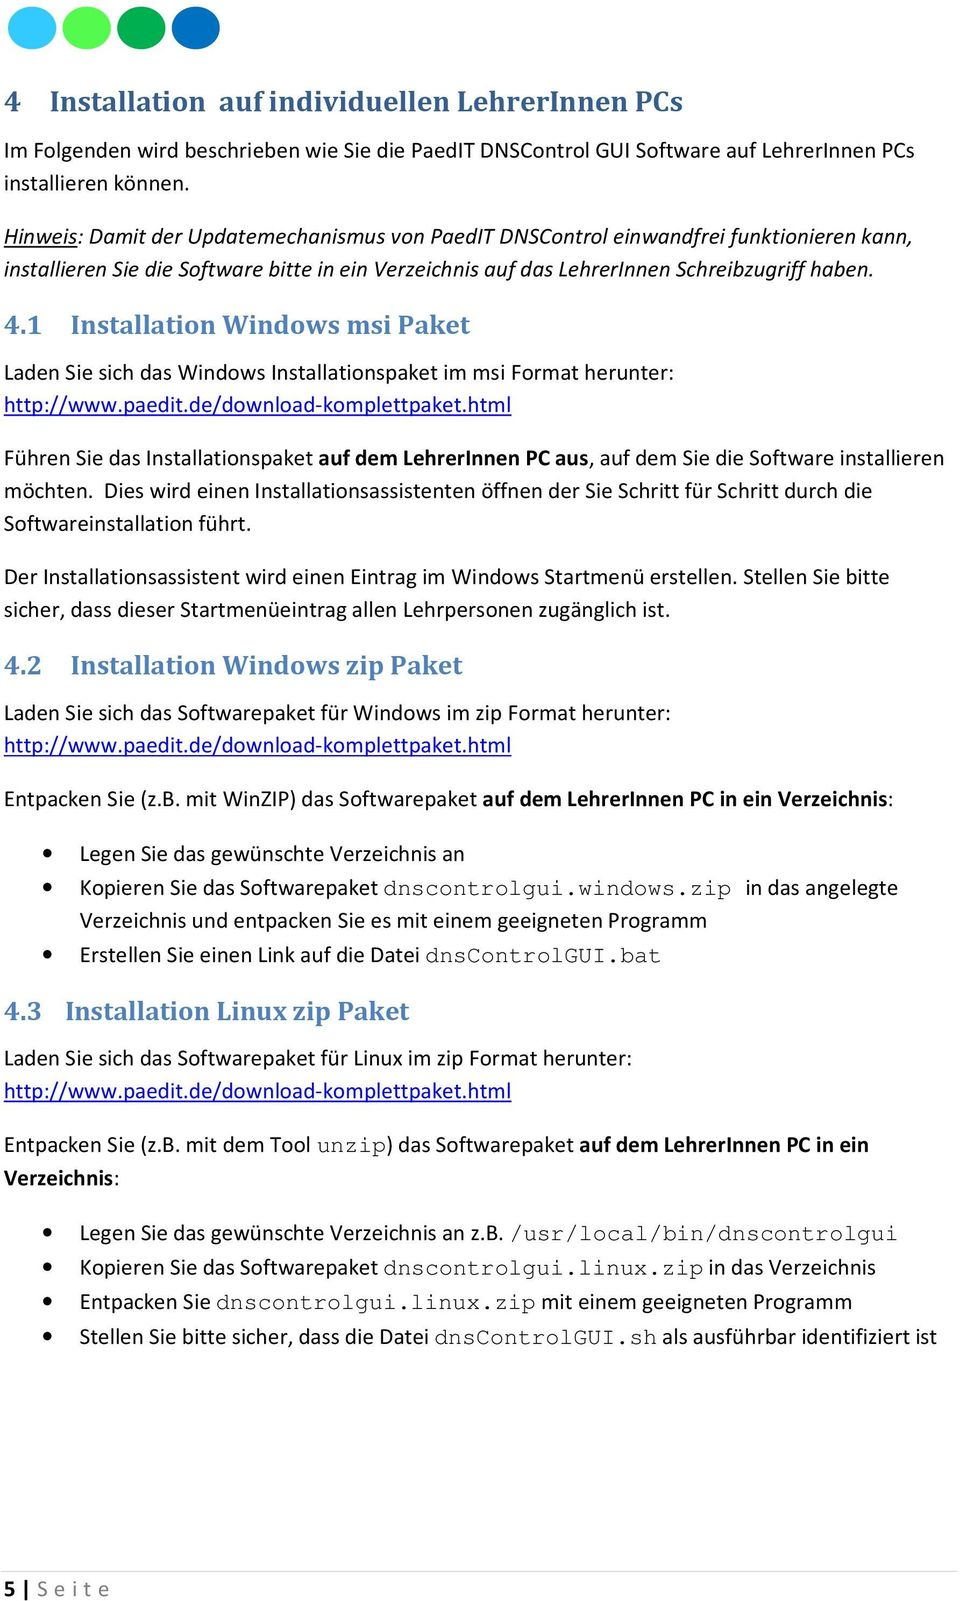 1 Installation Windows msi Paket Laden Sie sich das Windows Installationspaket im msi Format herunter: http://www.paedit.de/download-komplettpaket.